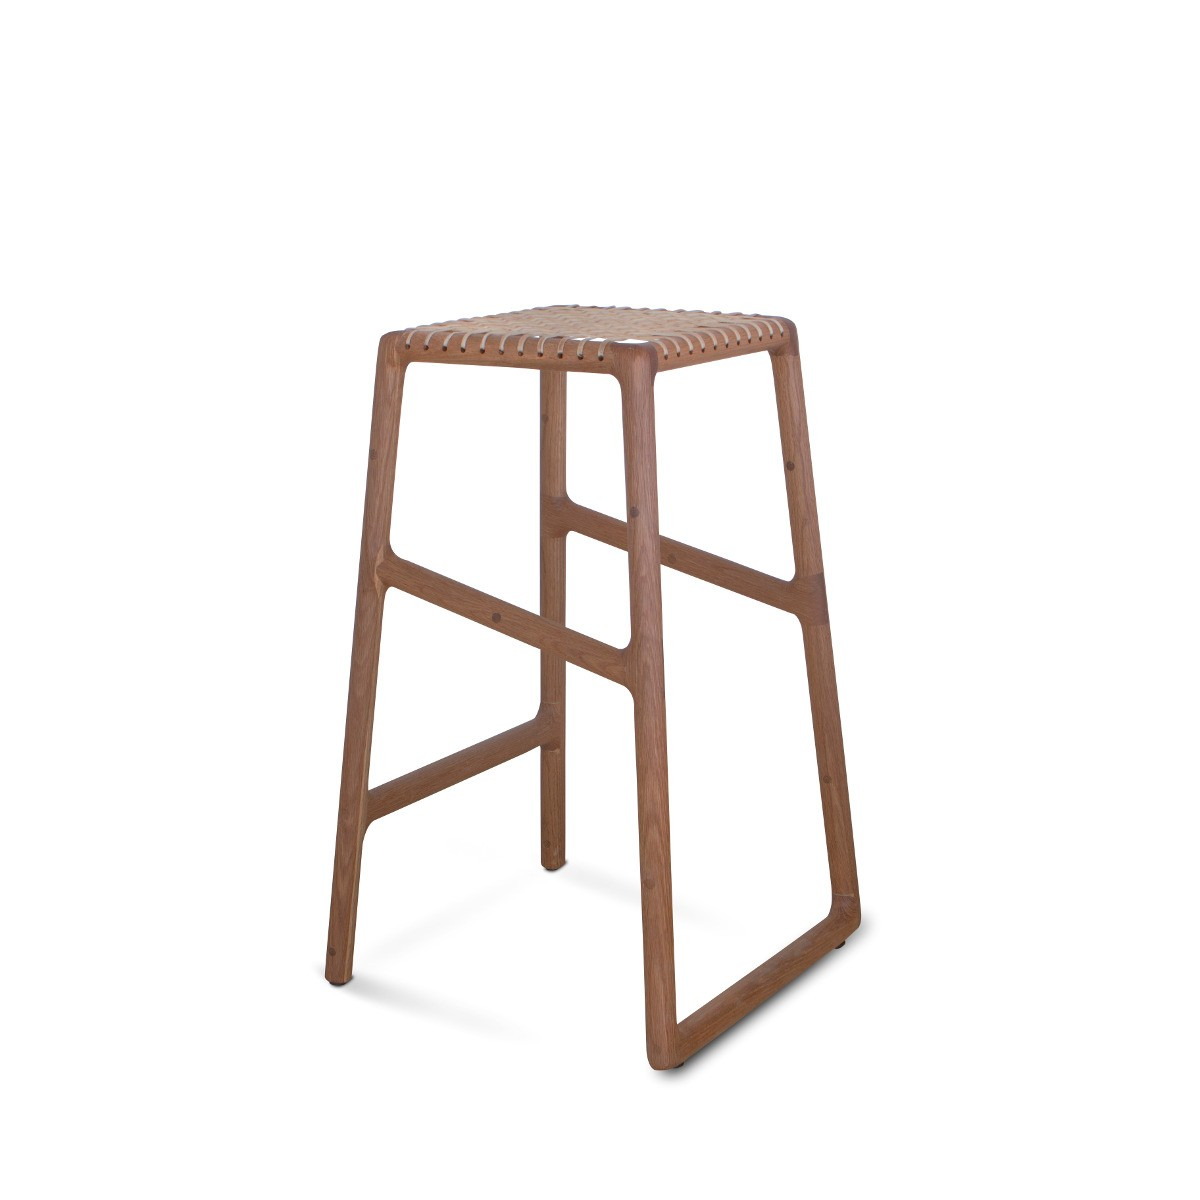 http://piffany.eu/wp-content/uploads/2019/05/Olso-Bar-Chair-1.jpg